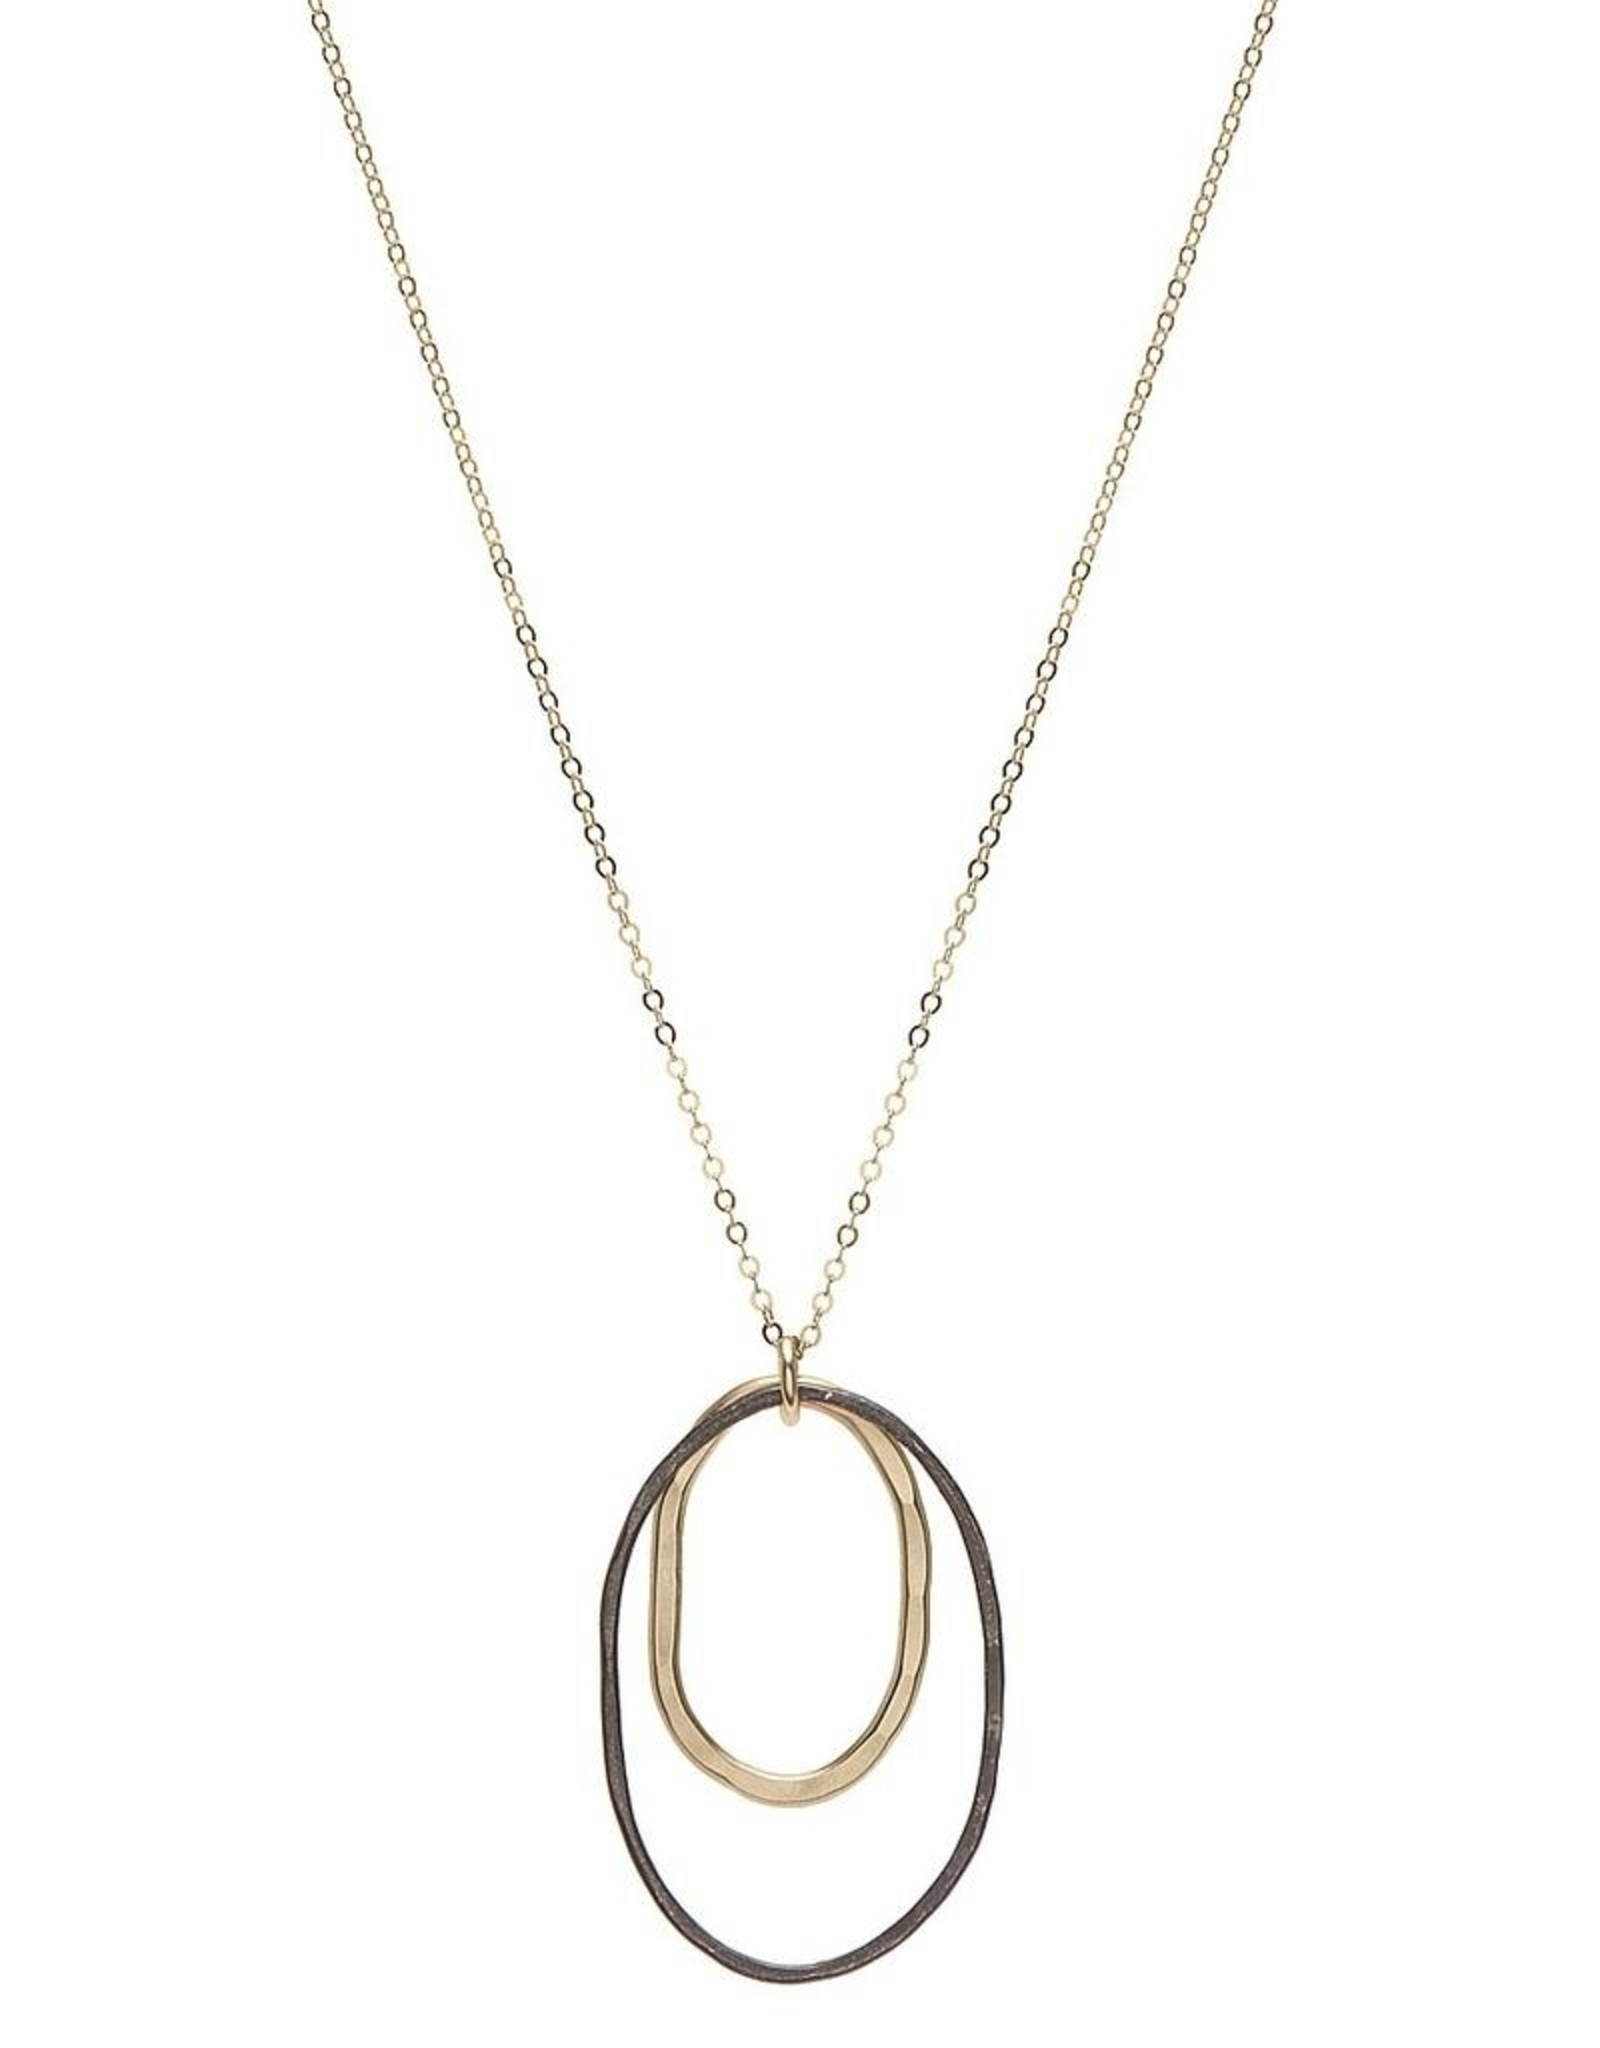 Handmade Black Oxidized Sterling Silver Oval and 14k Goldfill Oval on Goldfill Chain Necklace, 18""